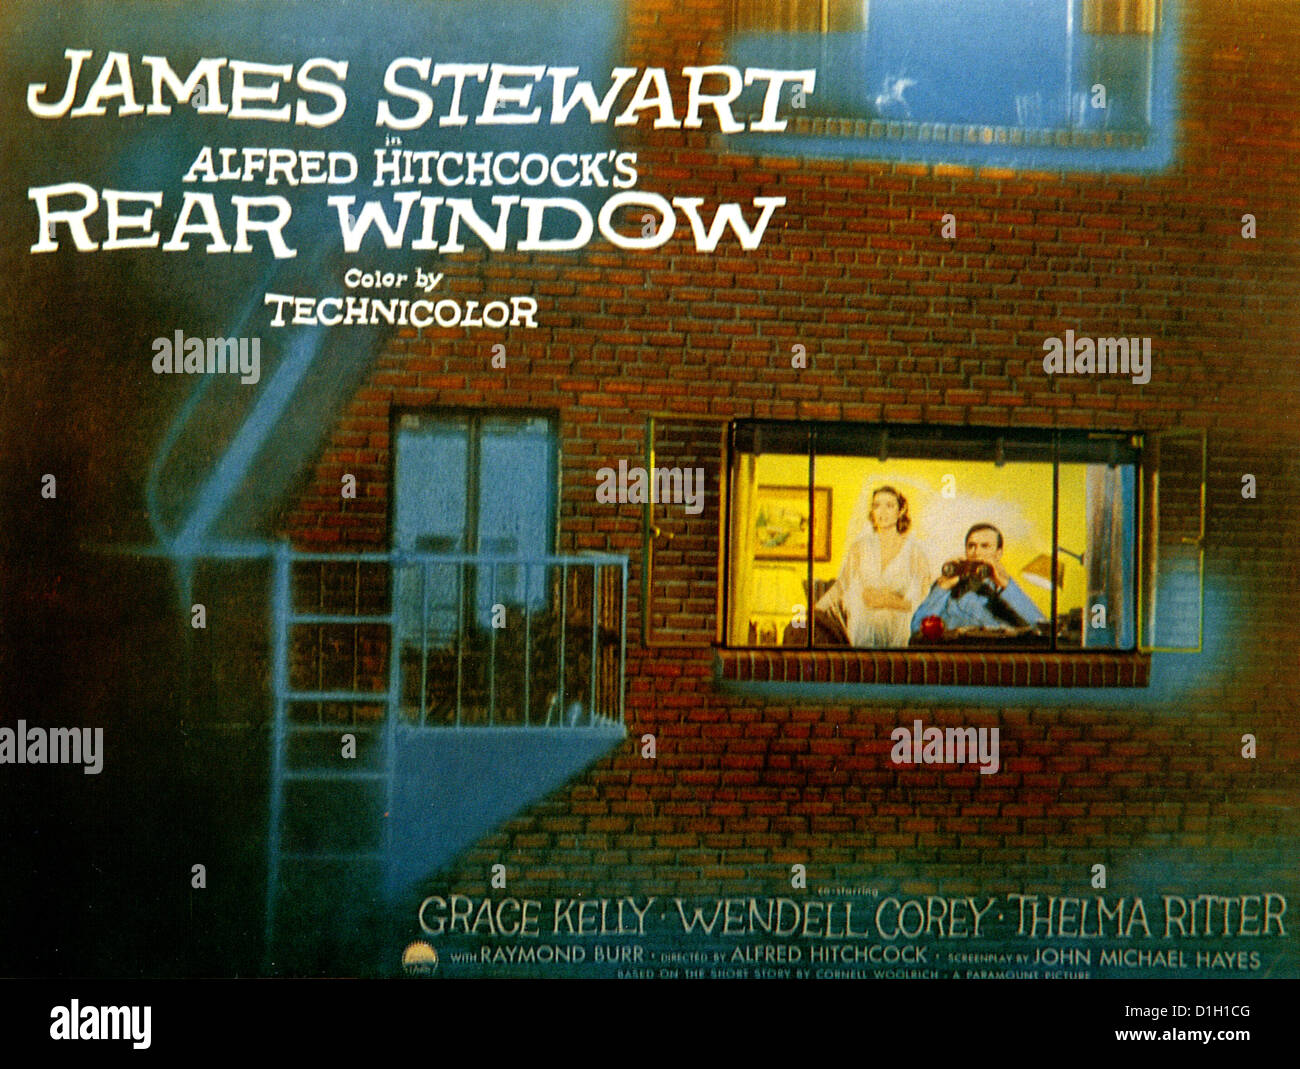 REAR WINDOW Poster for 1954 Paramount film with James Stewart and Grace Kelly directed by Alfred Hitchcock - Stock Image